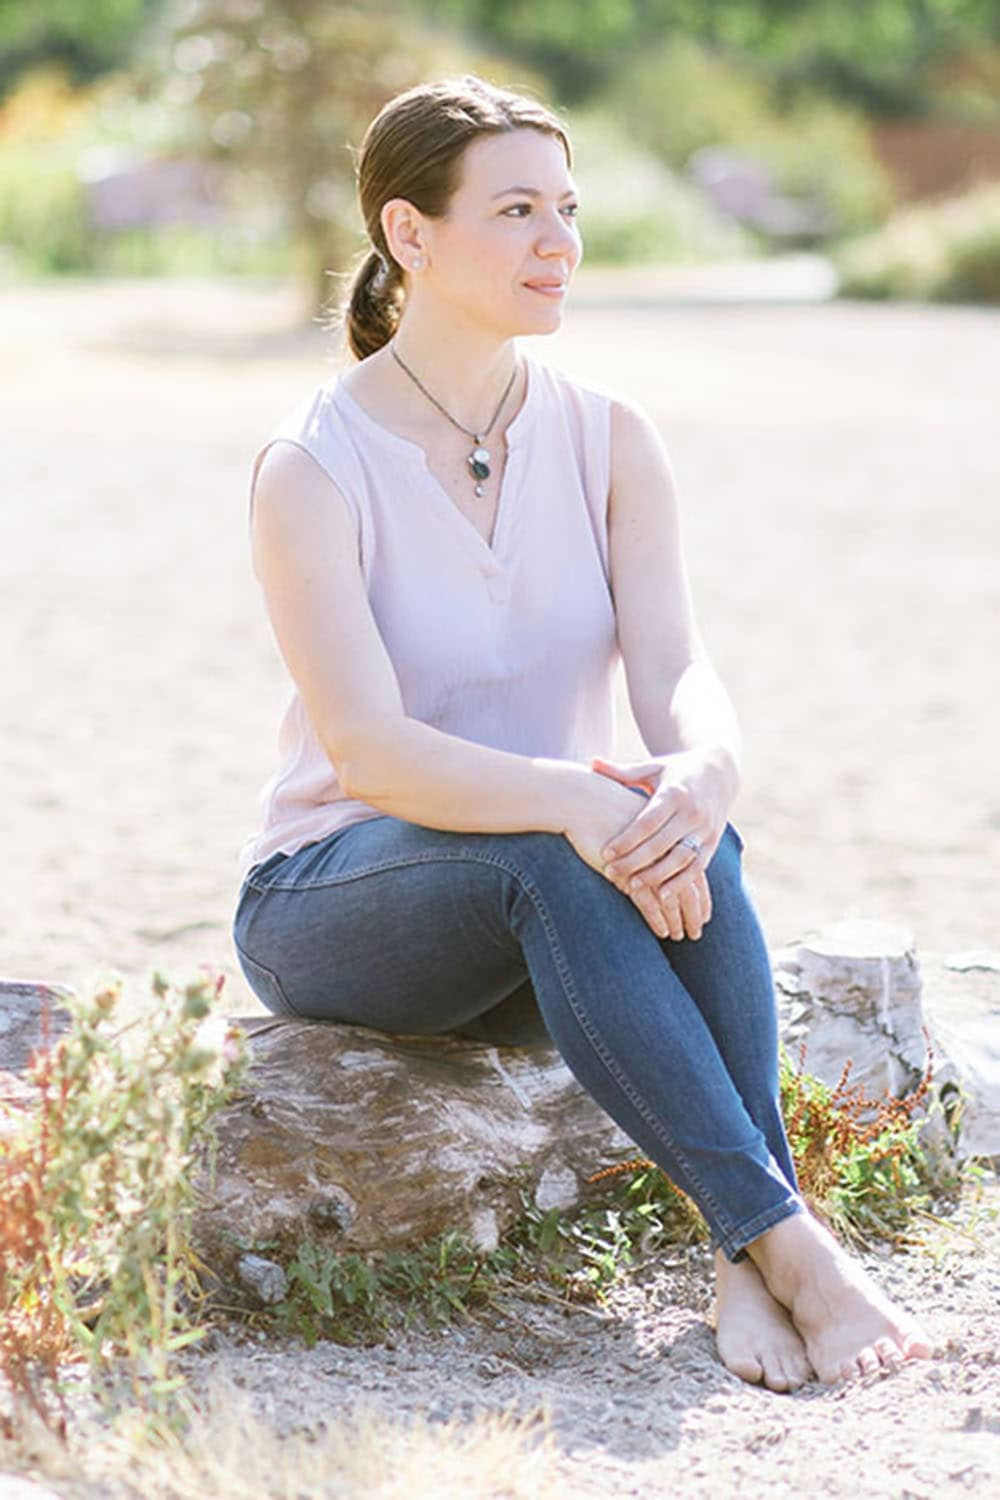 Laura sitting on a rock